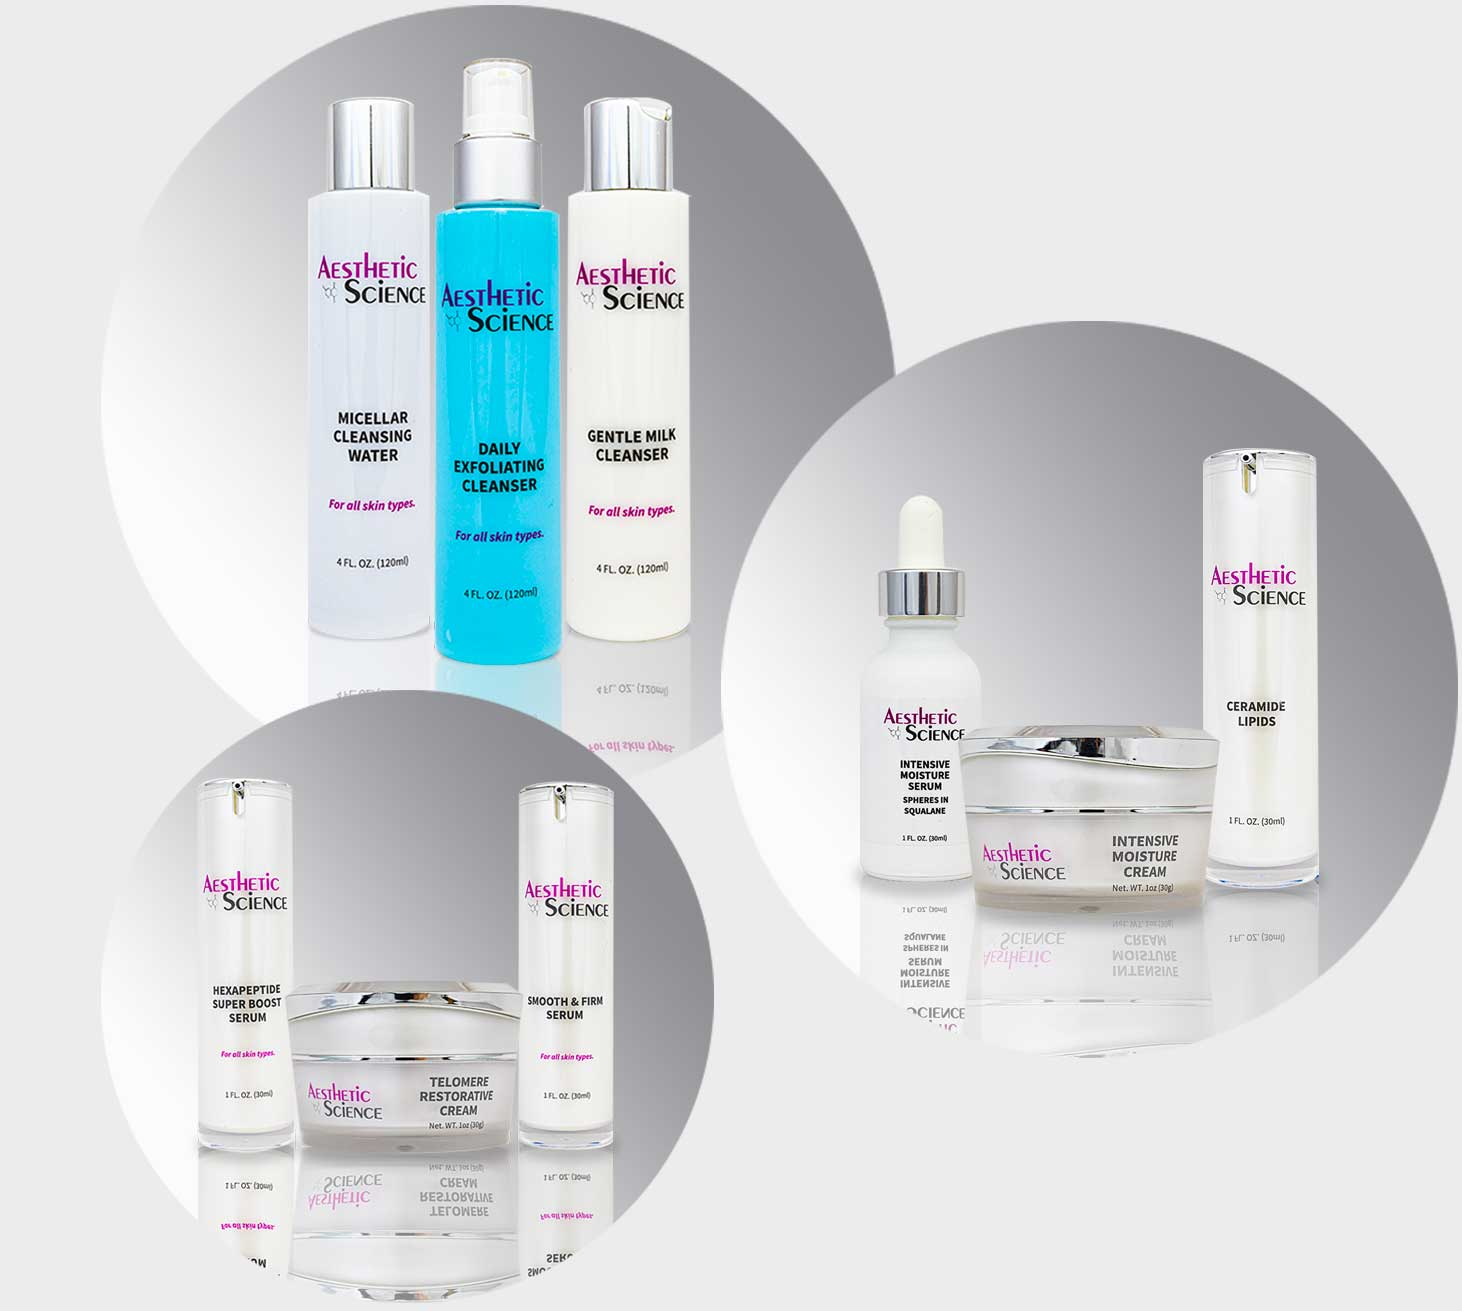 Aesthetic Science Skincare's assorted products from their professional skincare product line